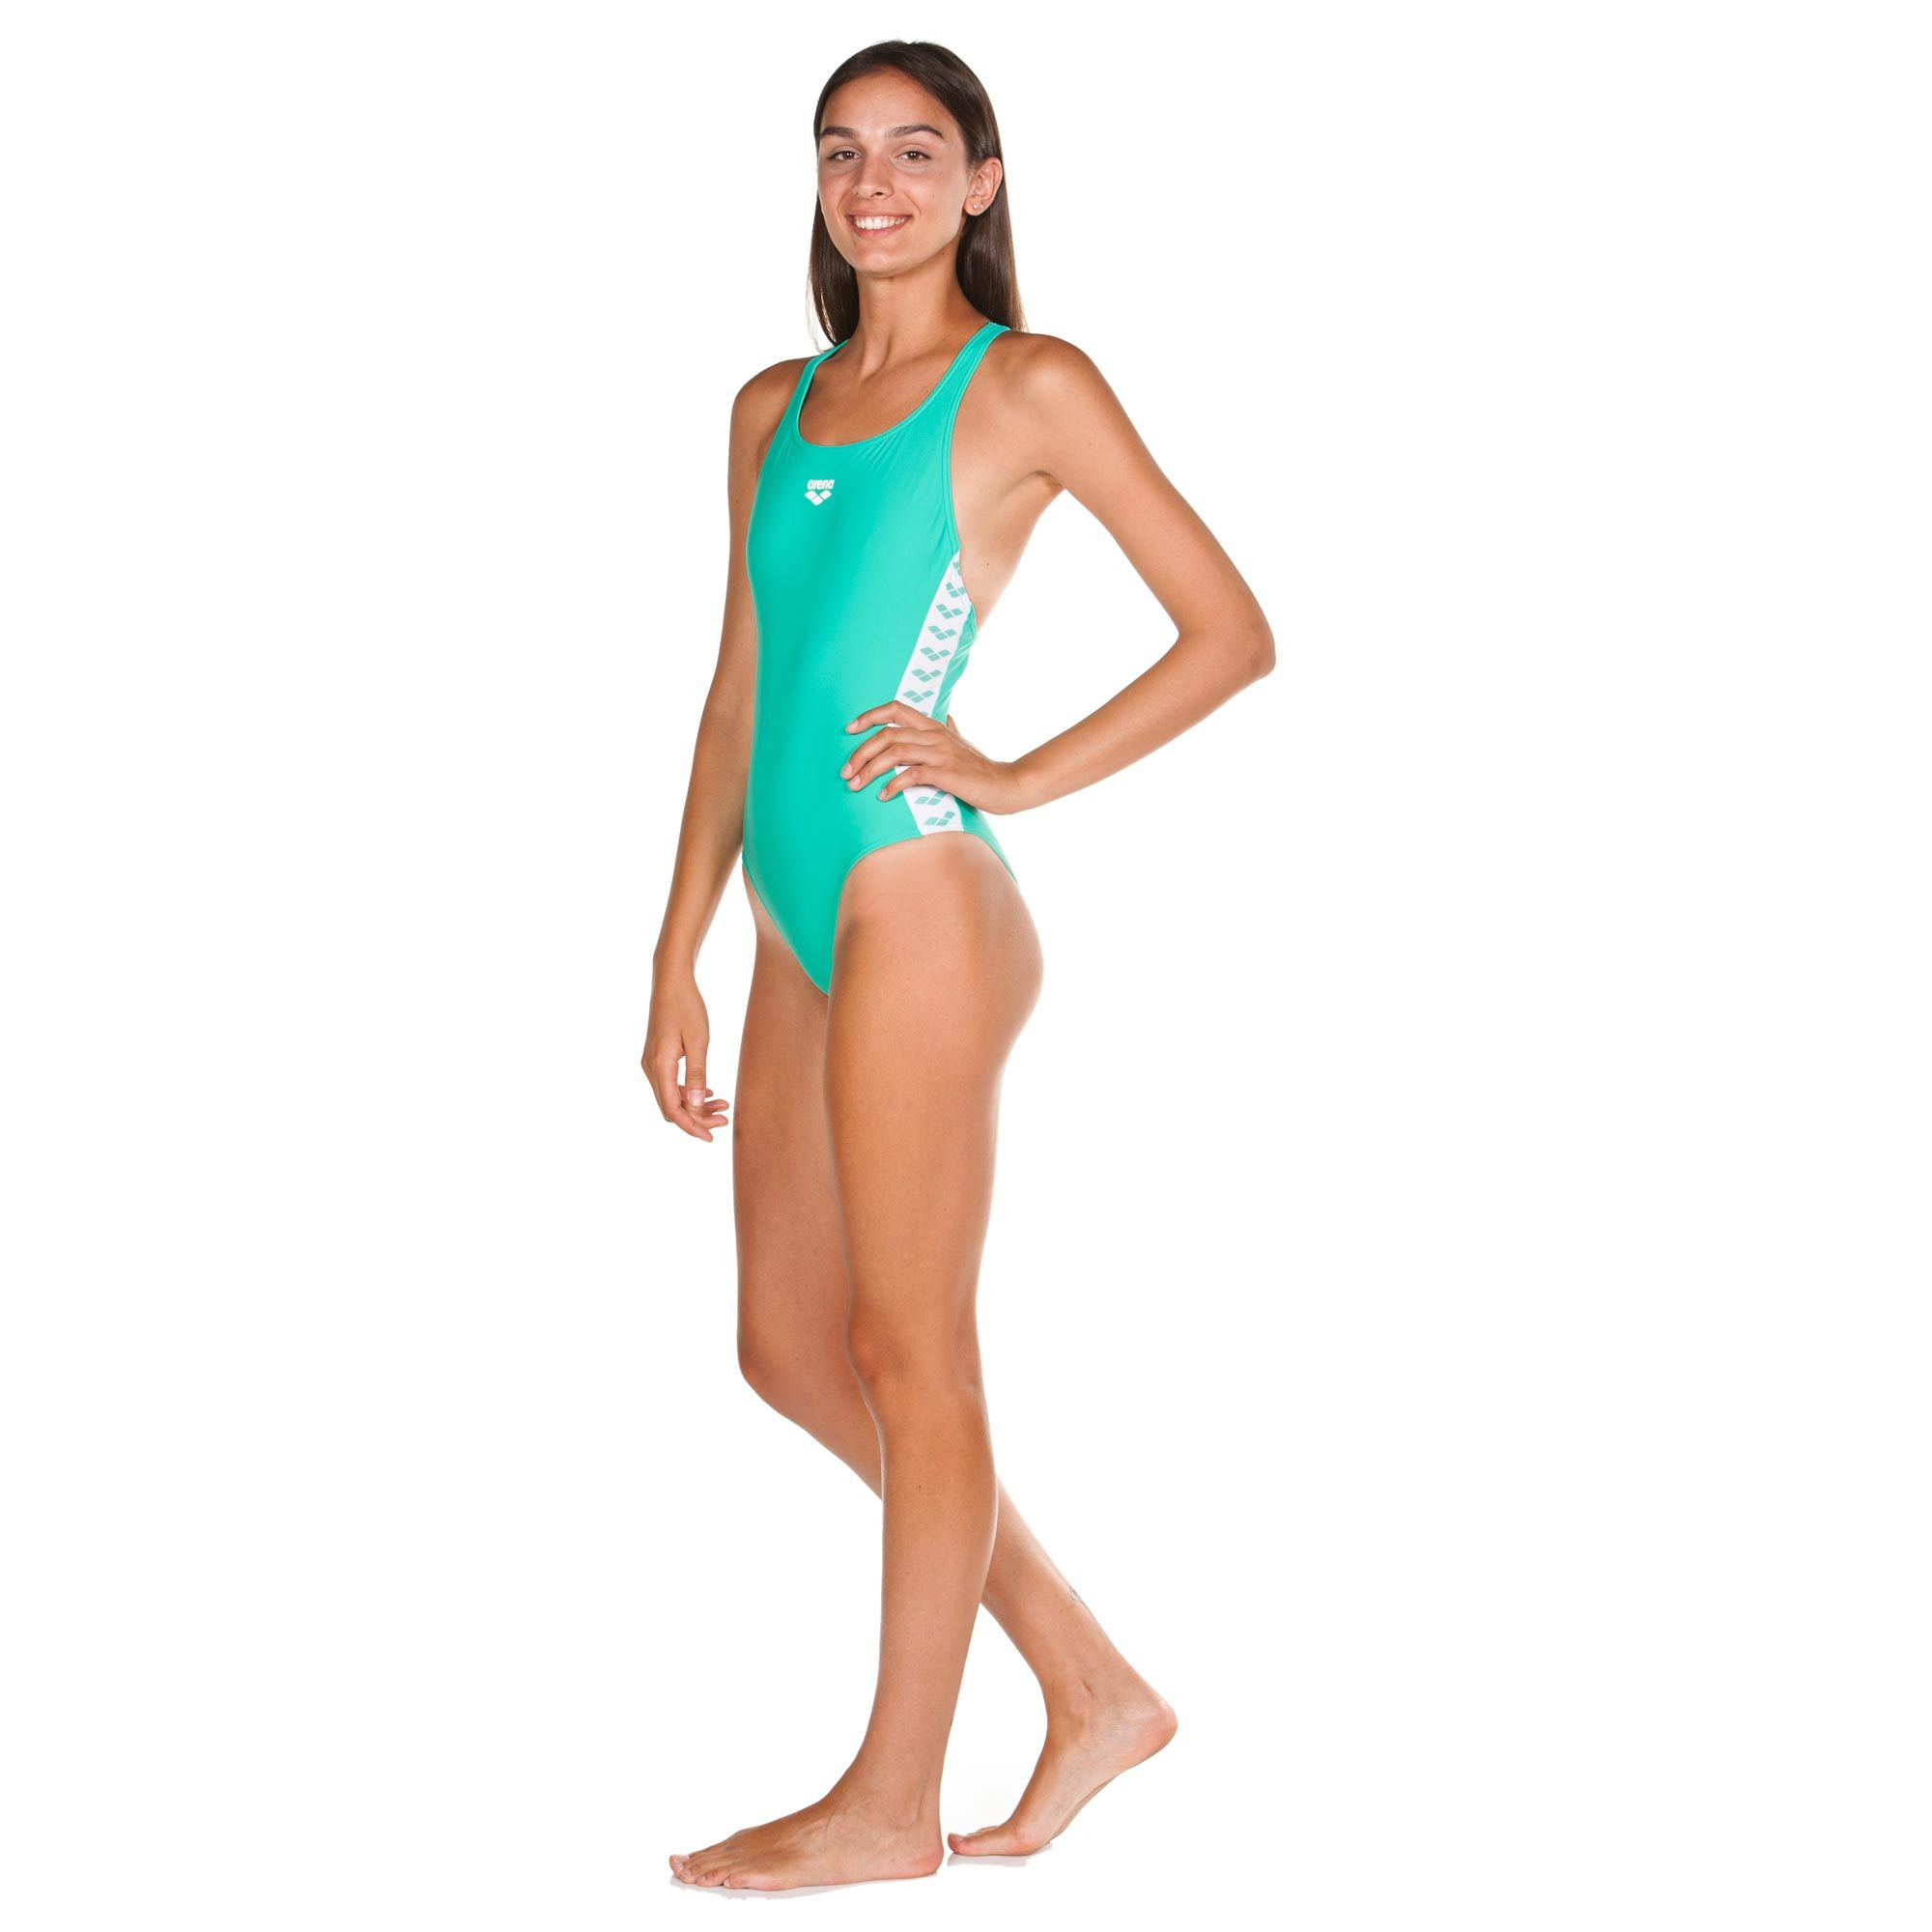 caddef127b1 Women's Team Fit One Piece | arena Training Swimsuits | One piece ...